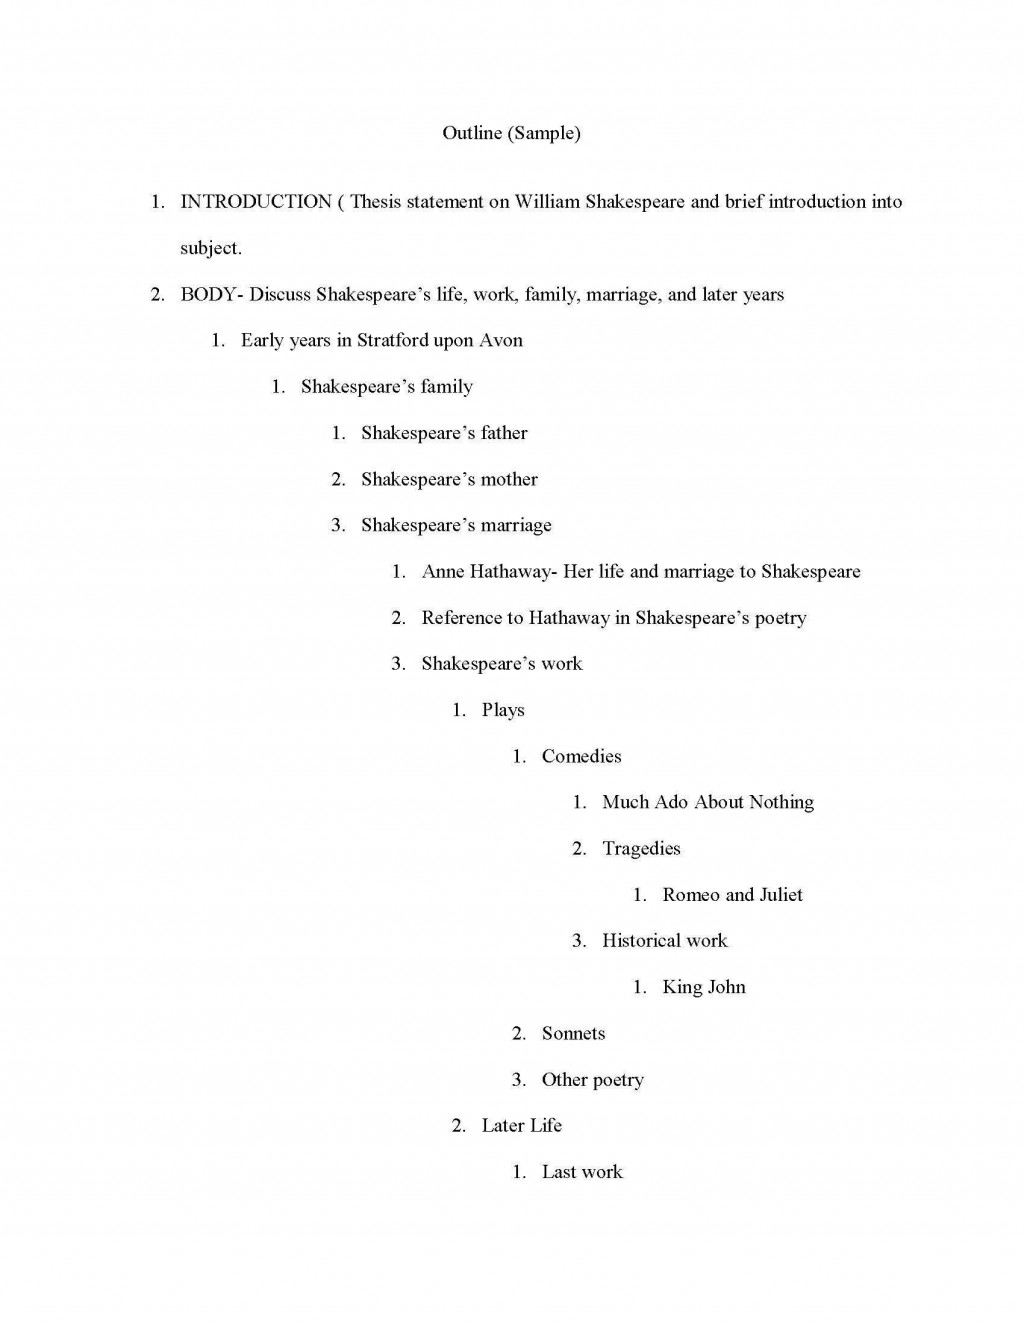 003 How To Write An Outline For Research Paper In Apa Format Sample 472645 Stupendous A Large